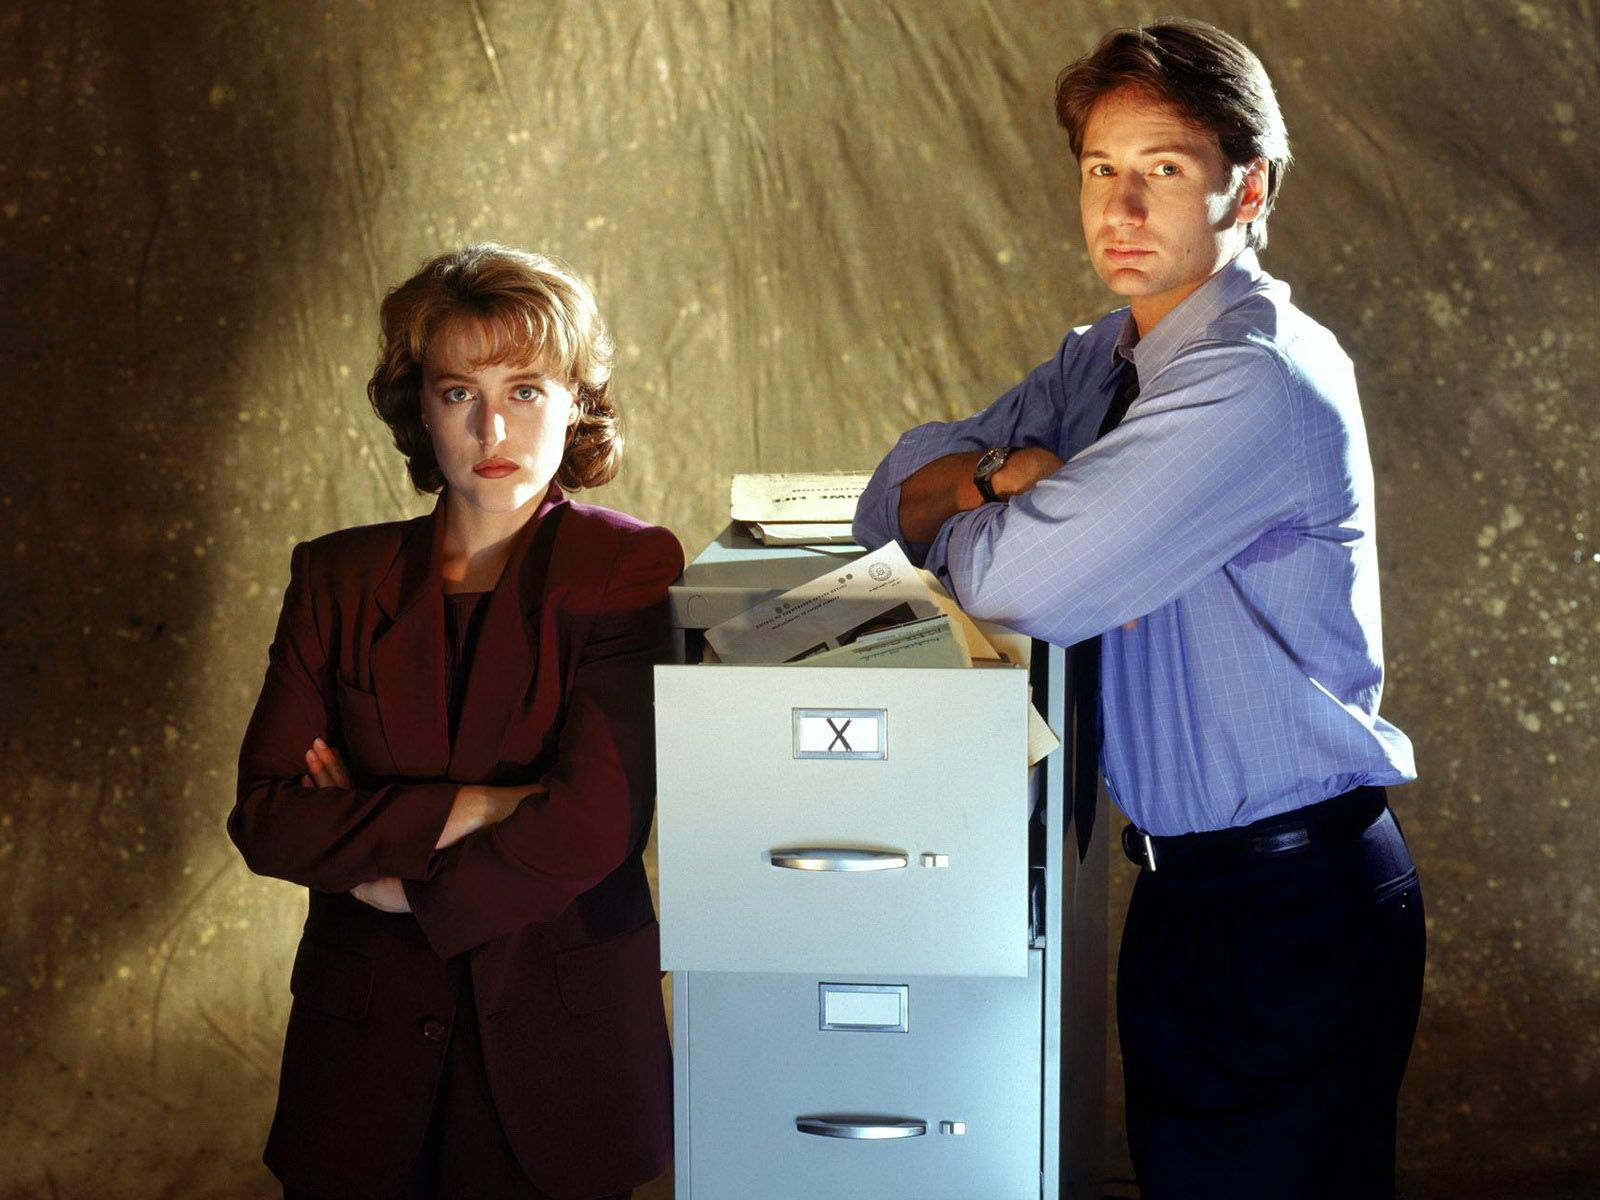 David Duchovny as Fox Mulder The X Files full HD image